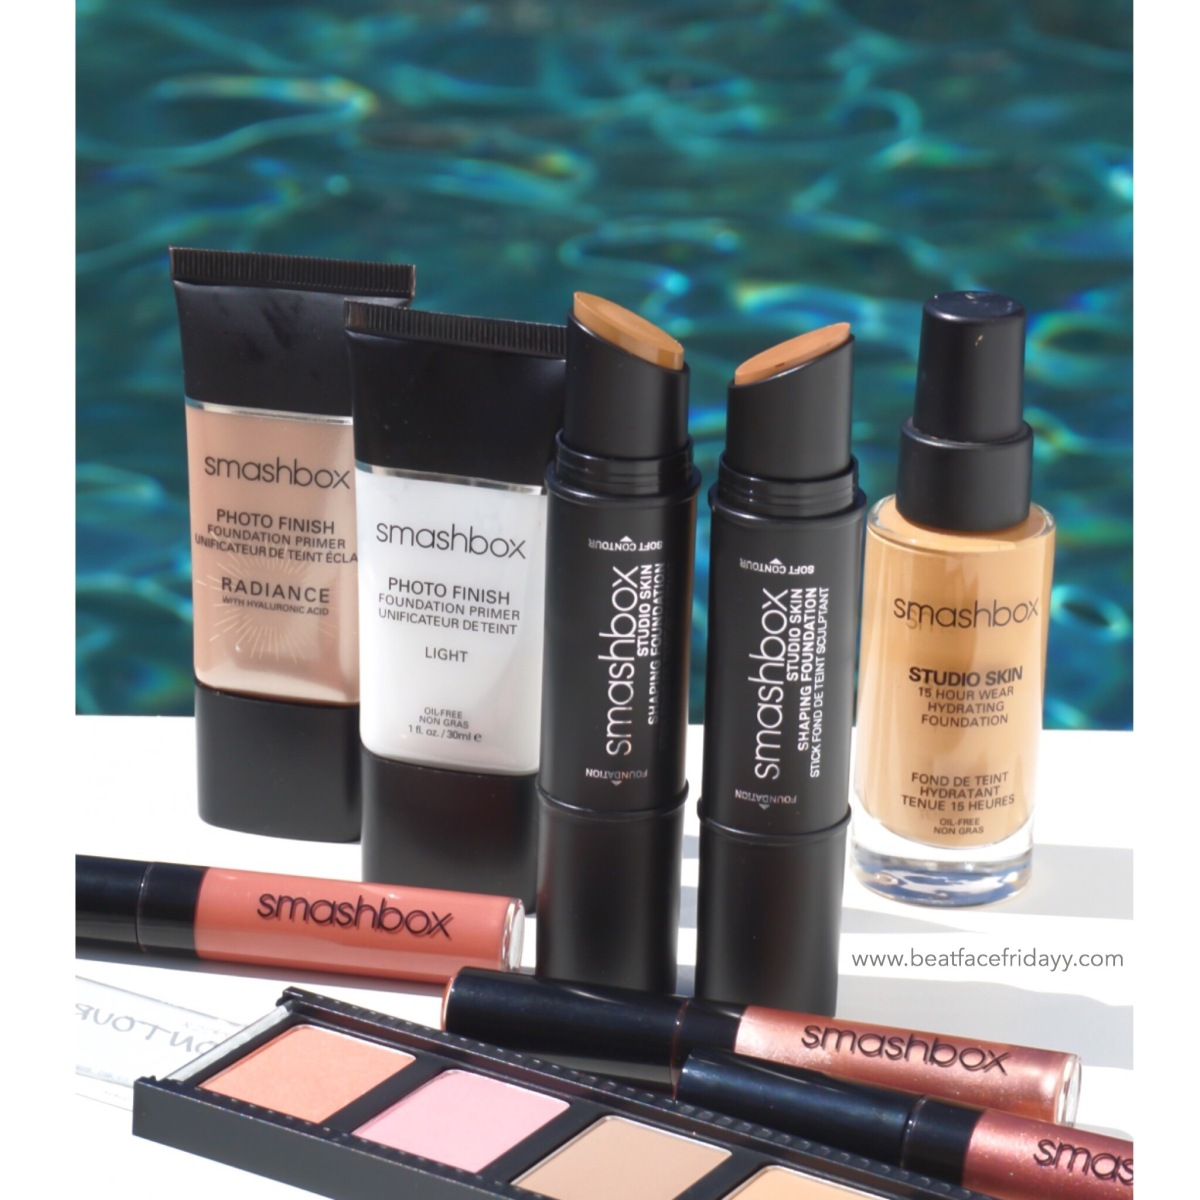 SMASHBOX Studio Skin Shaping Stick Double-Ended Foundation Contour Swatches 0.5, 1.0, 1.1, 1.2, 2.1, 2.2, 2.3, 2.4, 3.0, 3.1, 3.2, 3.3, 4.0, 4.1, 4.2, 4.3 (Sneak Peek)